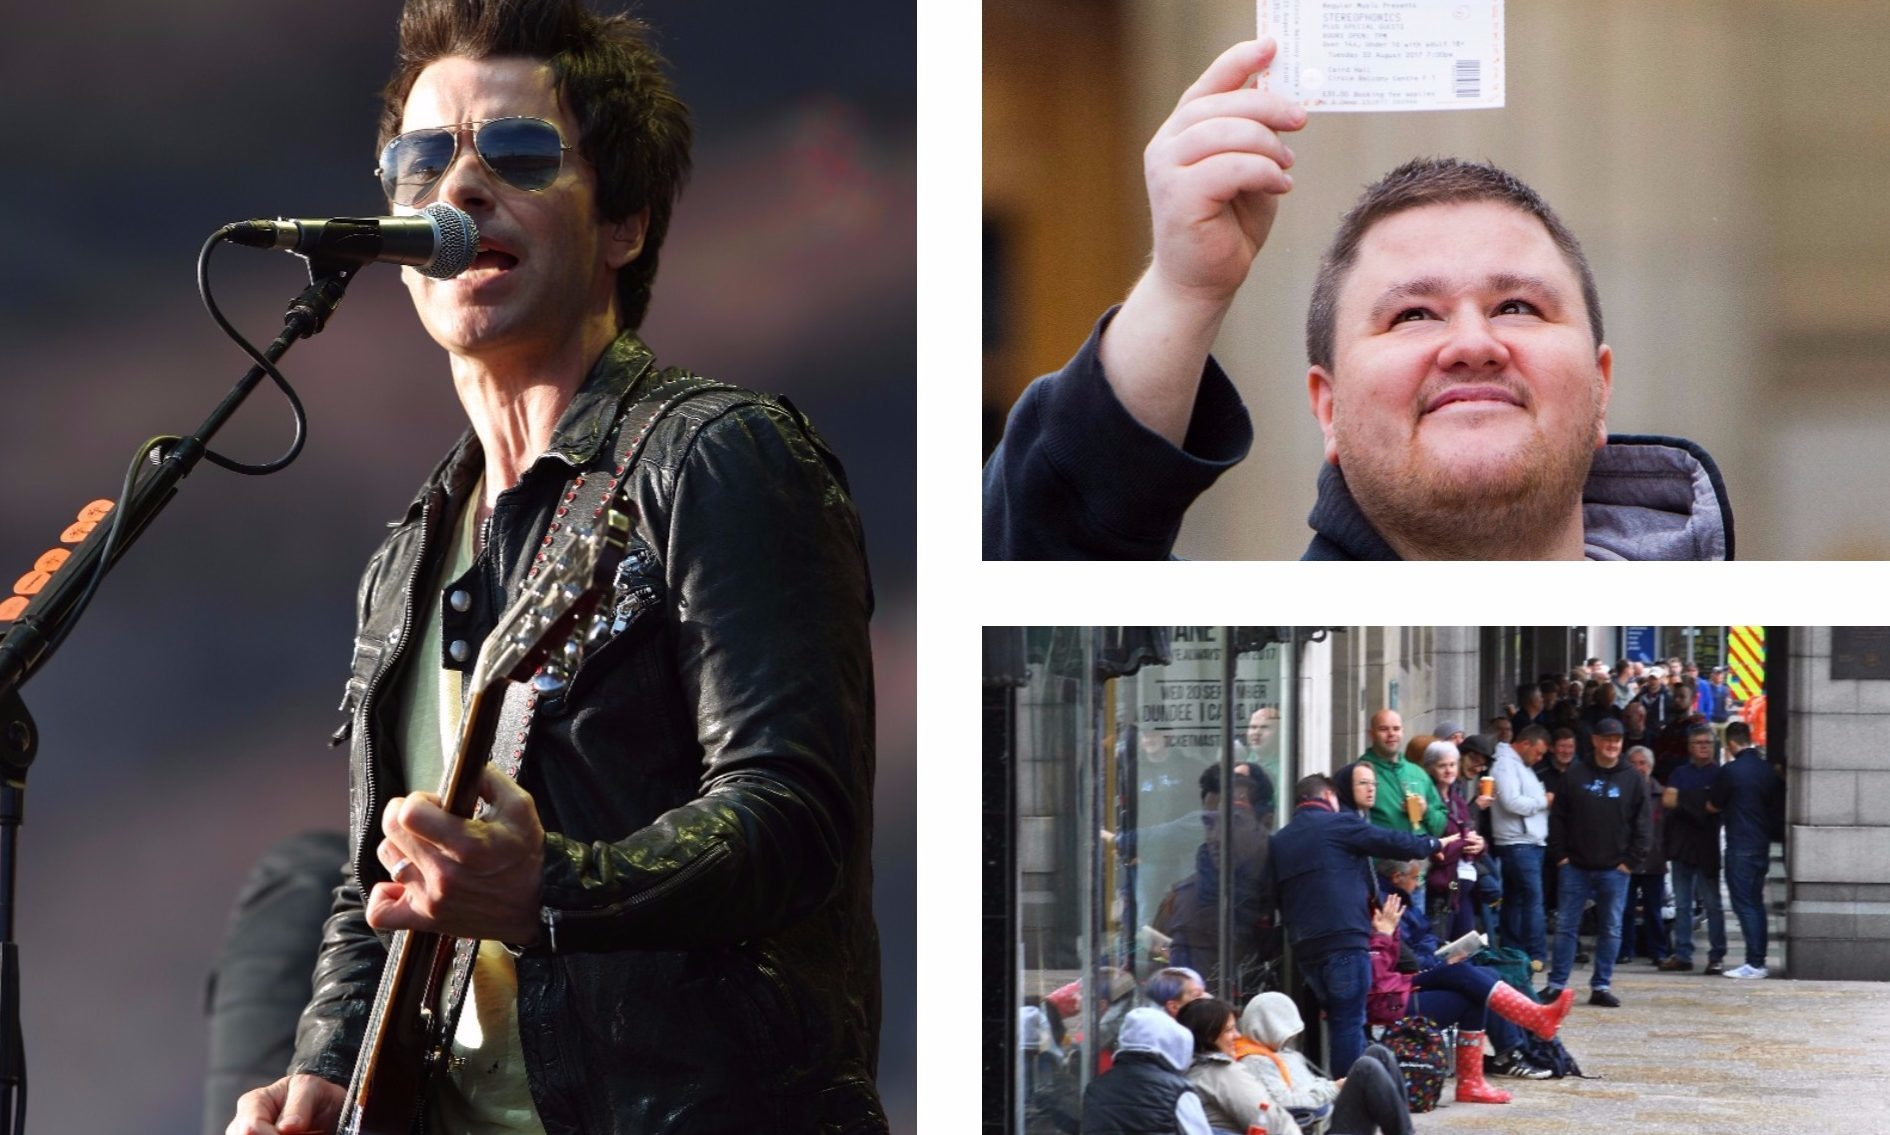 Stereophonics fans queued in the rain for tickets to see the band in Dundee.